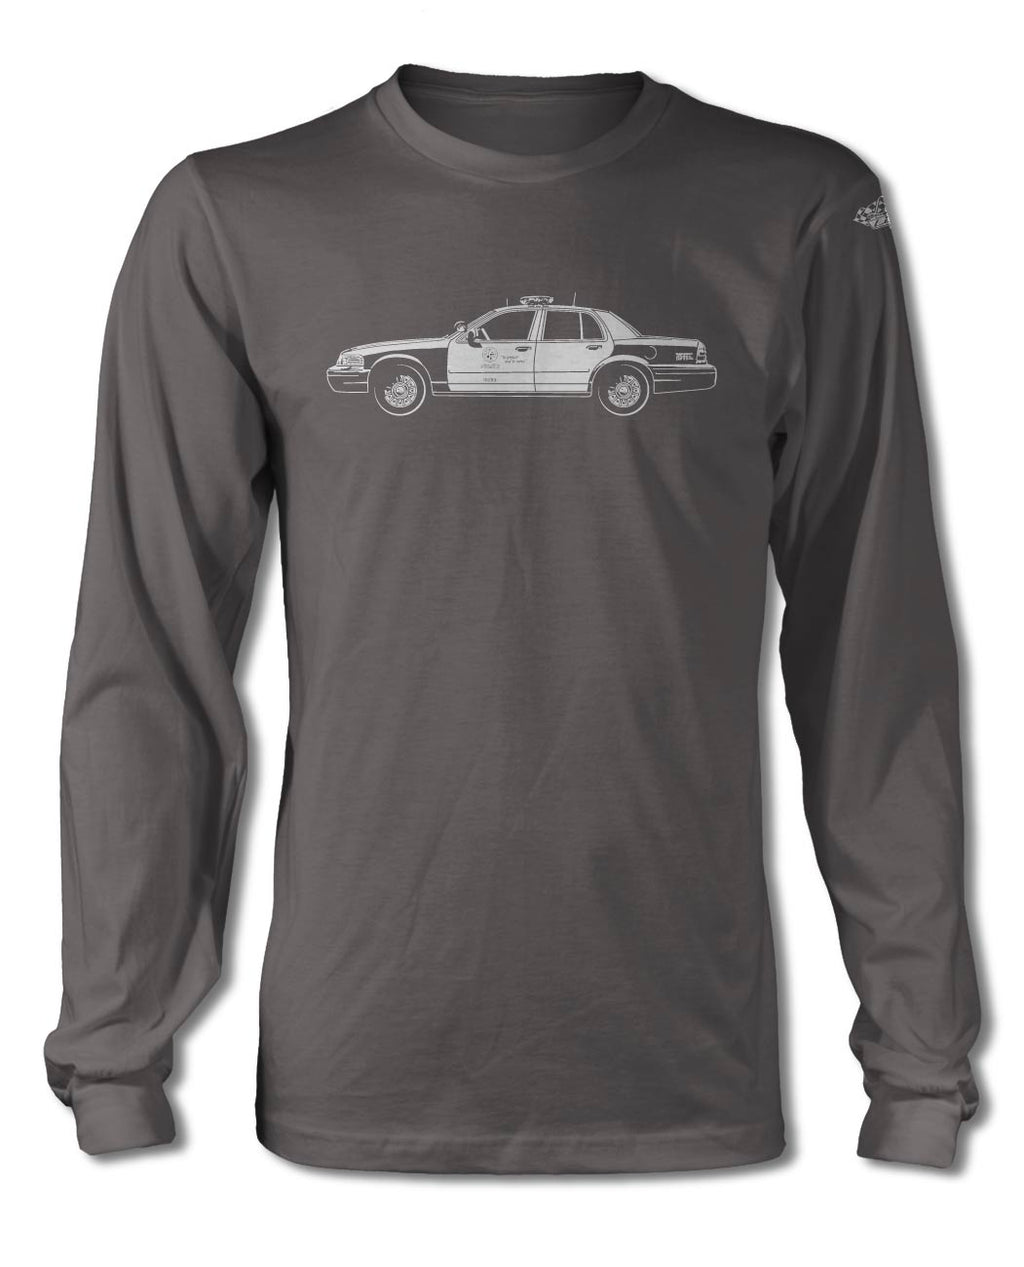 Ford Crown Victoria LAPD T-Shirt - Long Sleeves - Side View